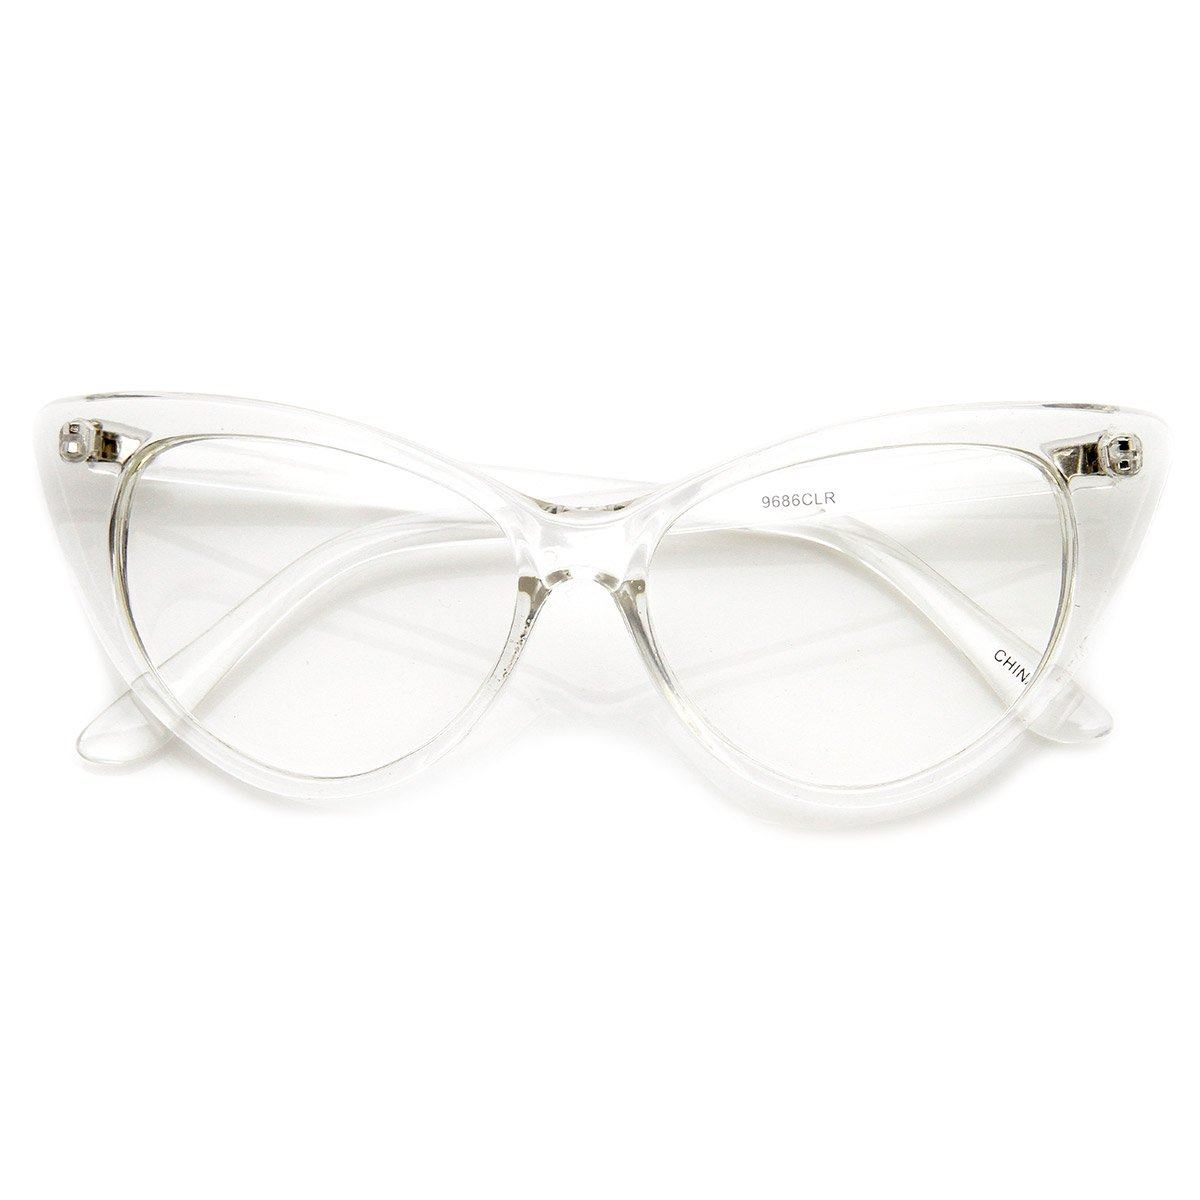 zeroUV - Super Cat Eye Glasses Vintage Inspired Mod Fashion Clear Lens Eyewear 0